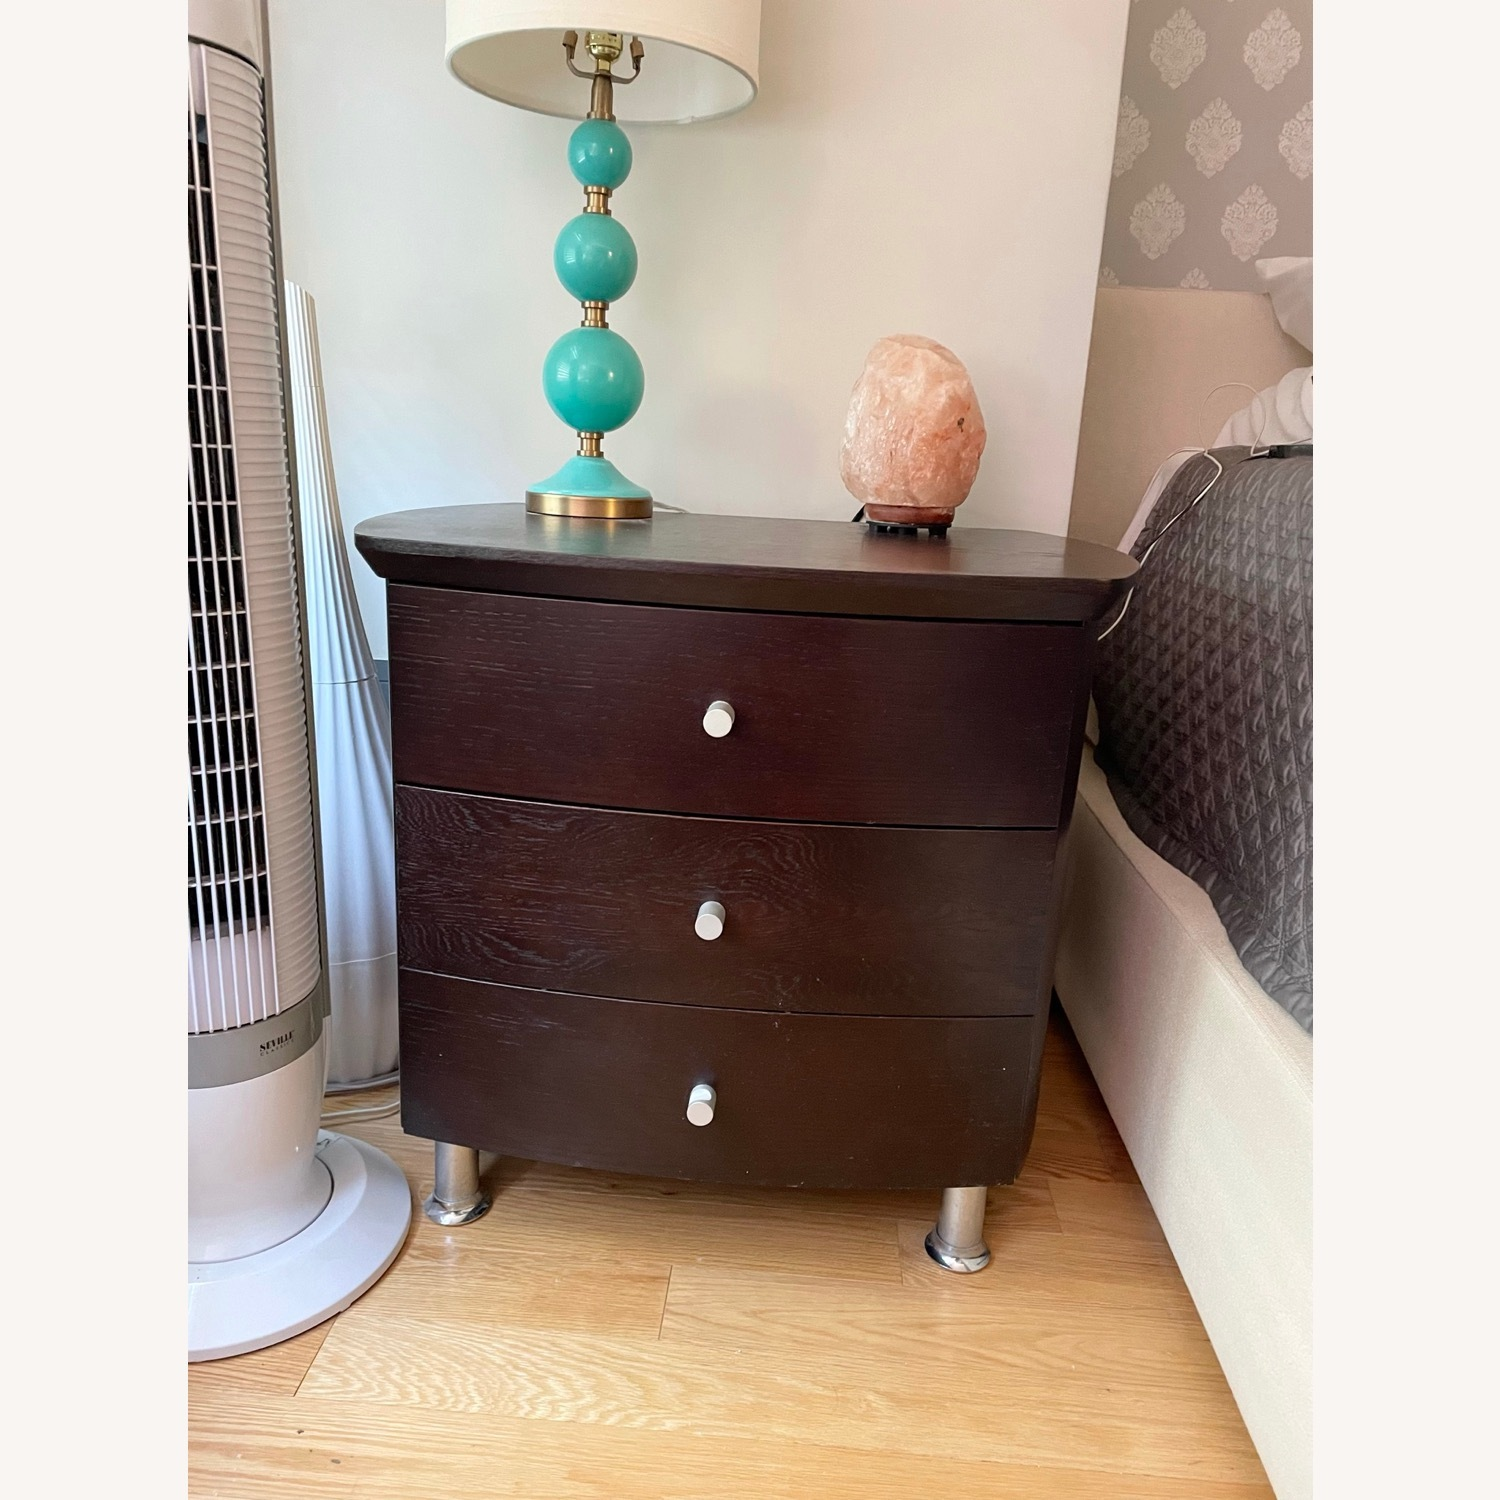 ByDesign 3-Drawer Nightstand with Chrome Legs - image-1